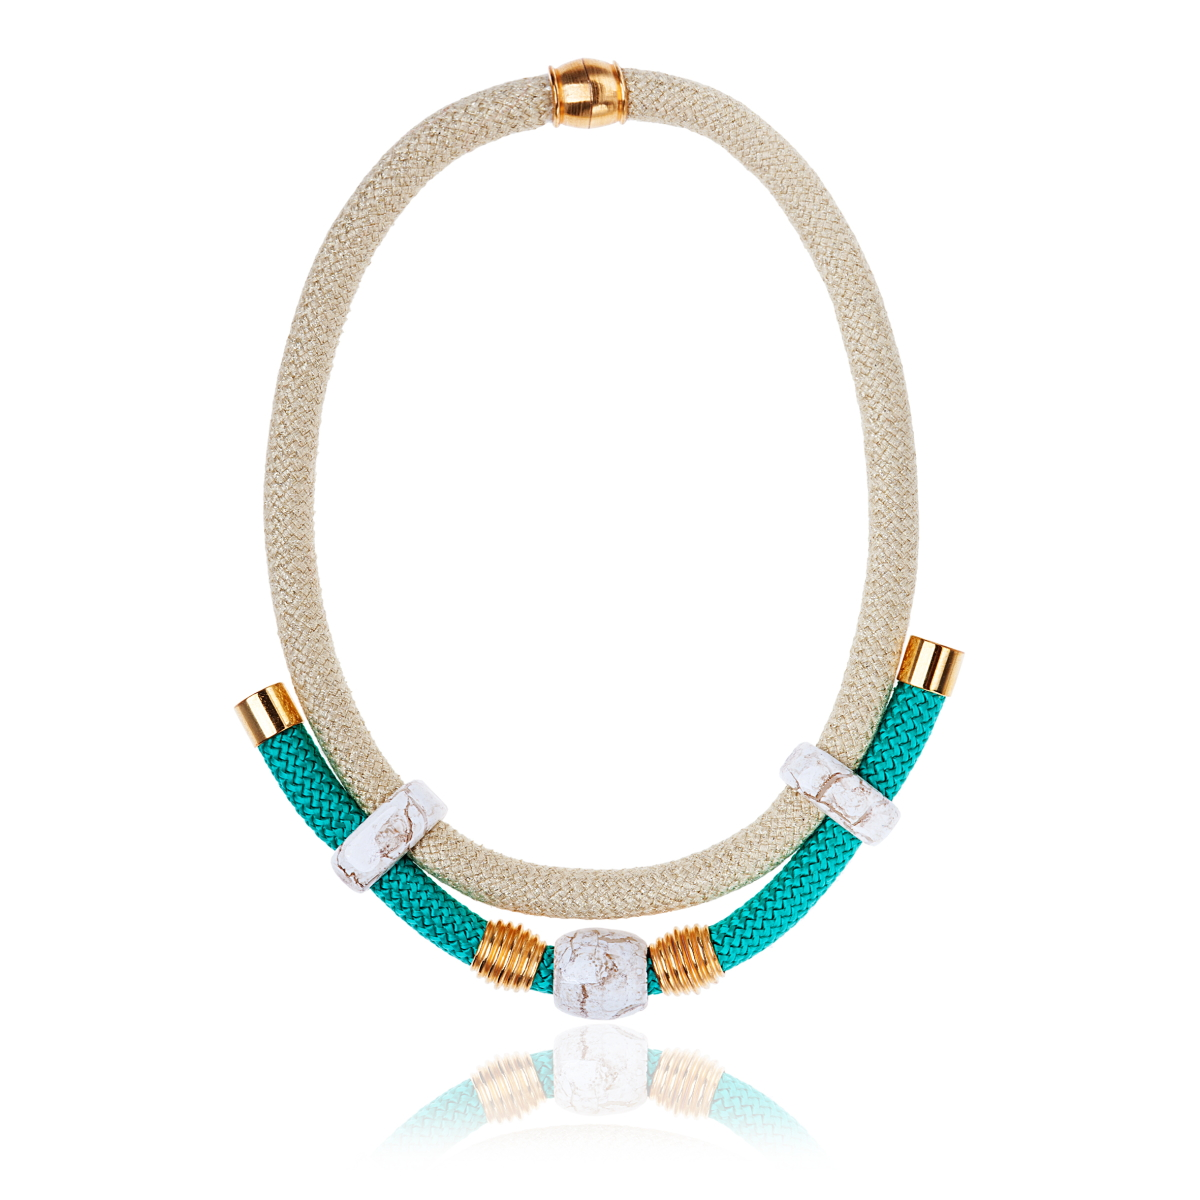 IRIS: Make a statement necklace / White & Mint | Accessories,Jewelry > Necklaces,Jewelry -  Hiphunters Shop